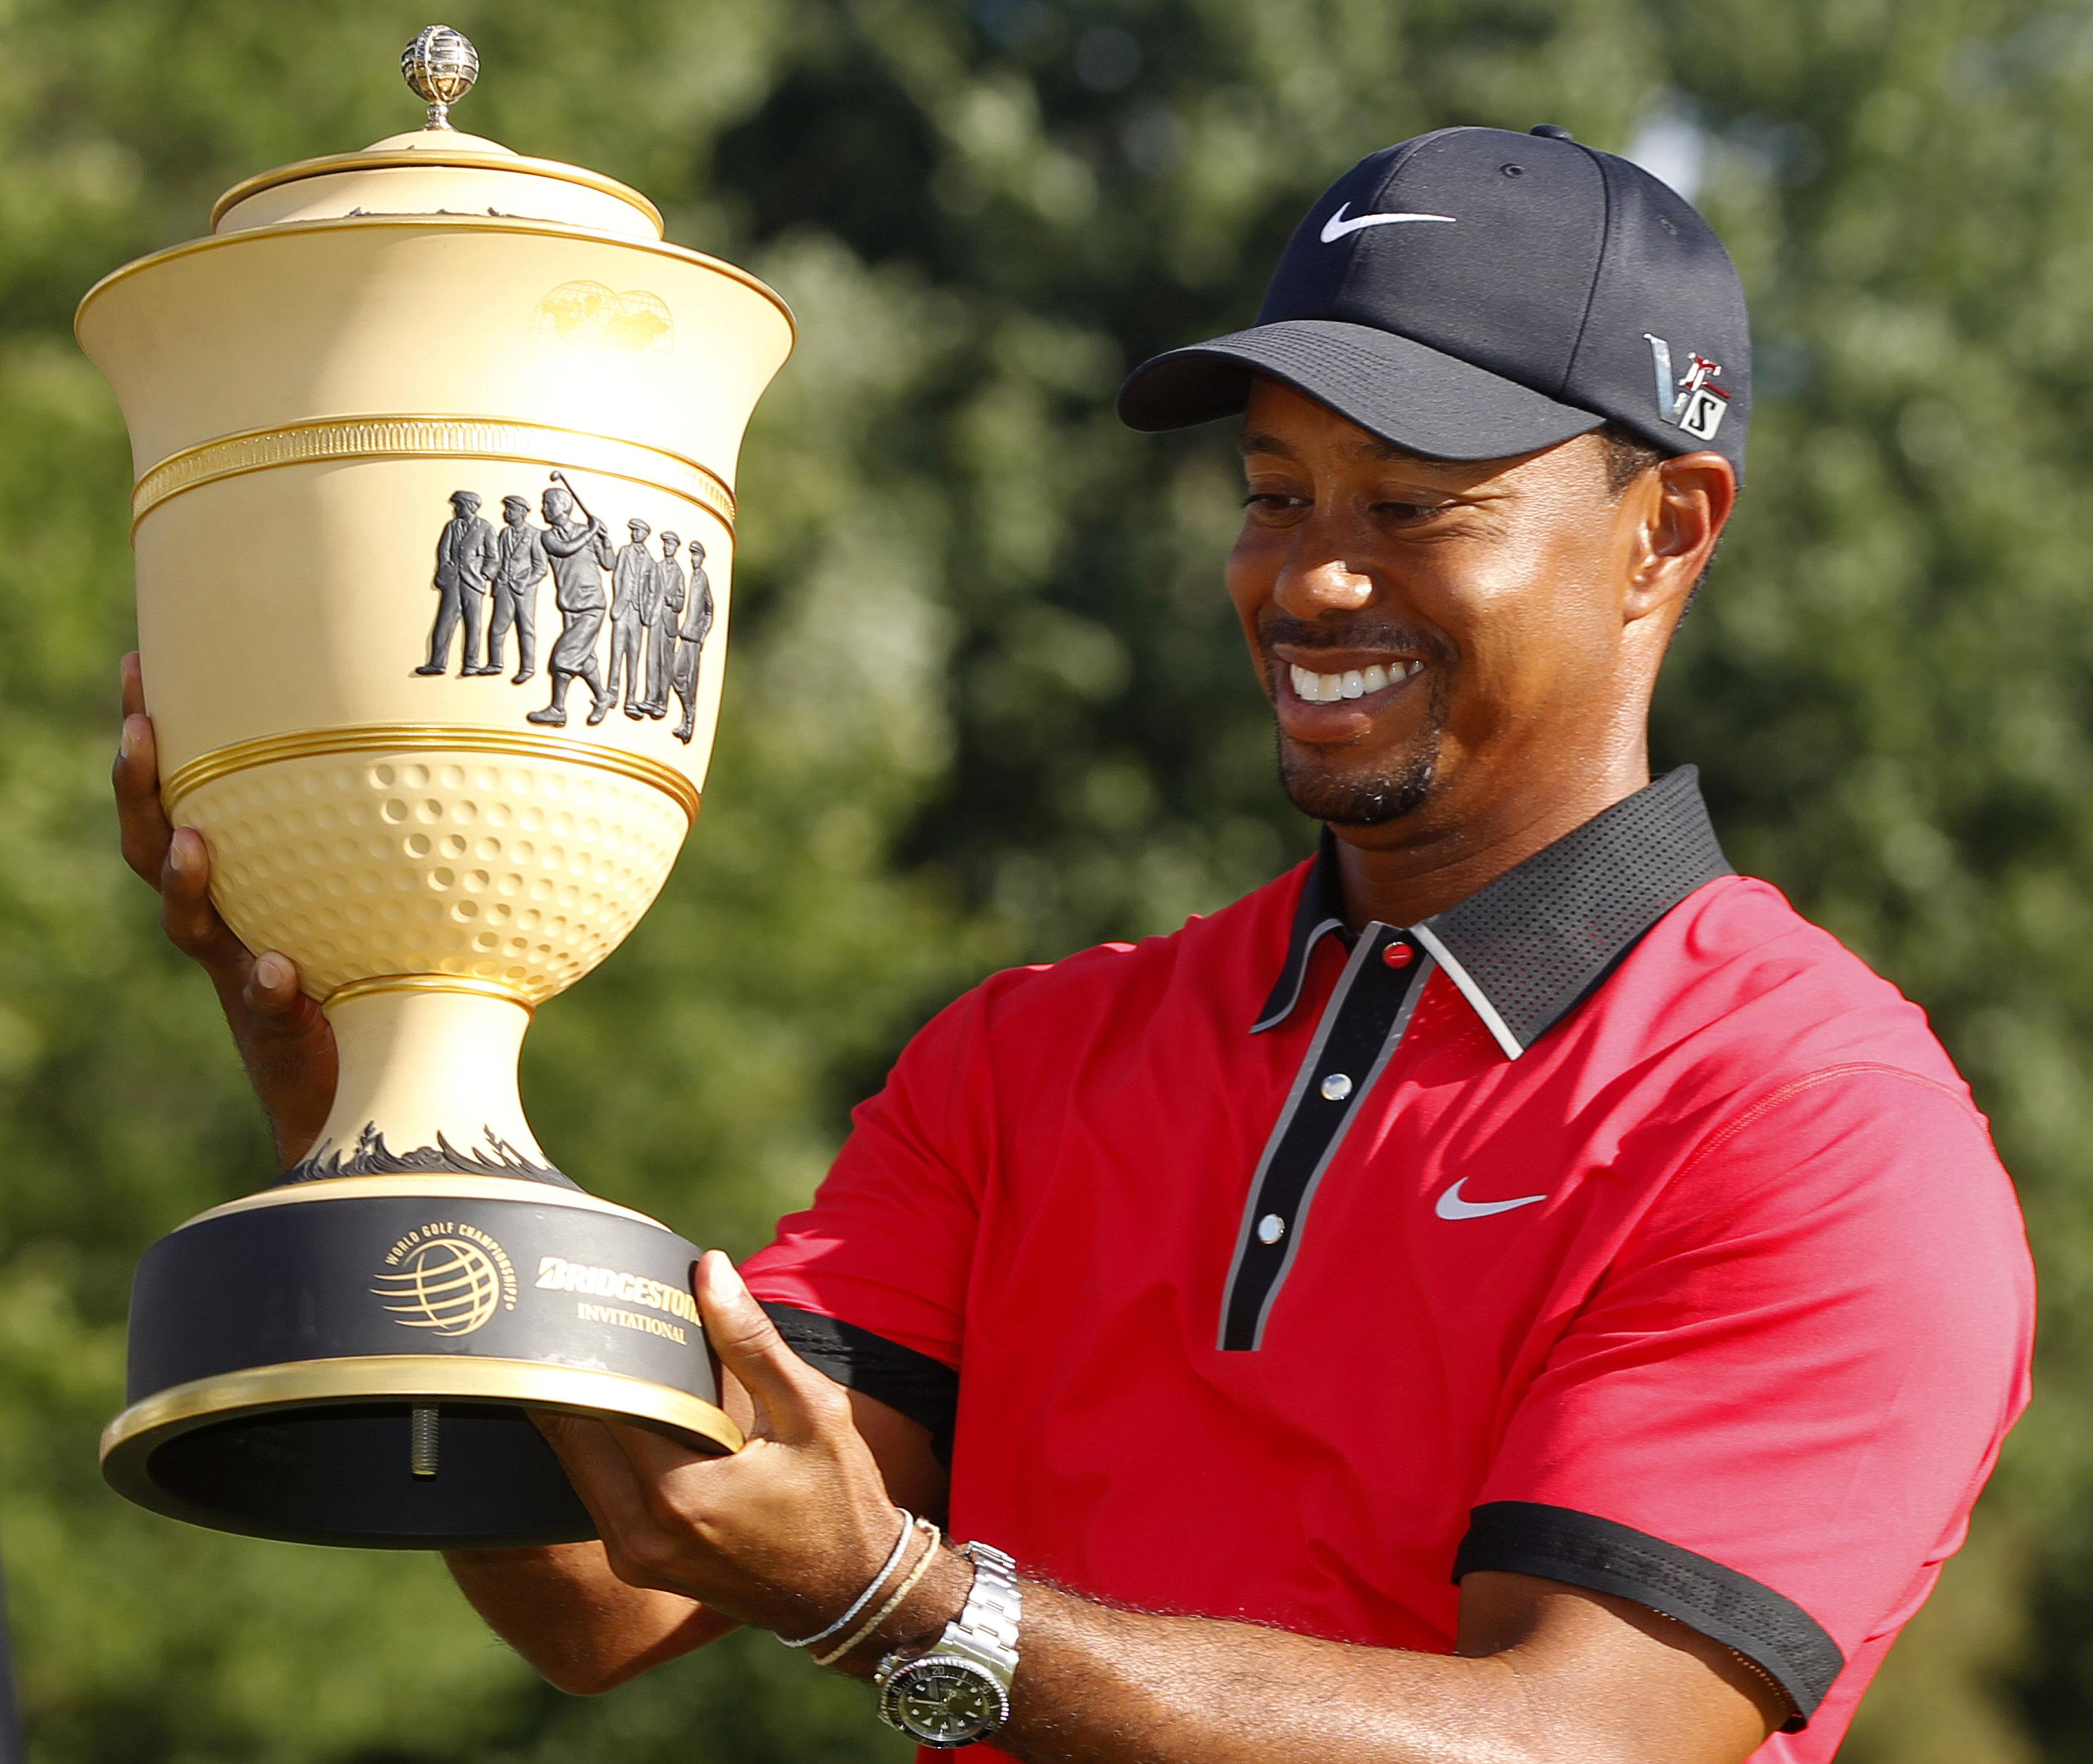 Woods is delighted his children saw him win a major trophy